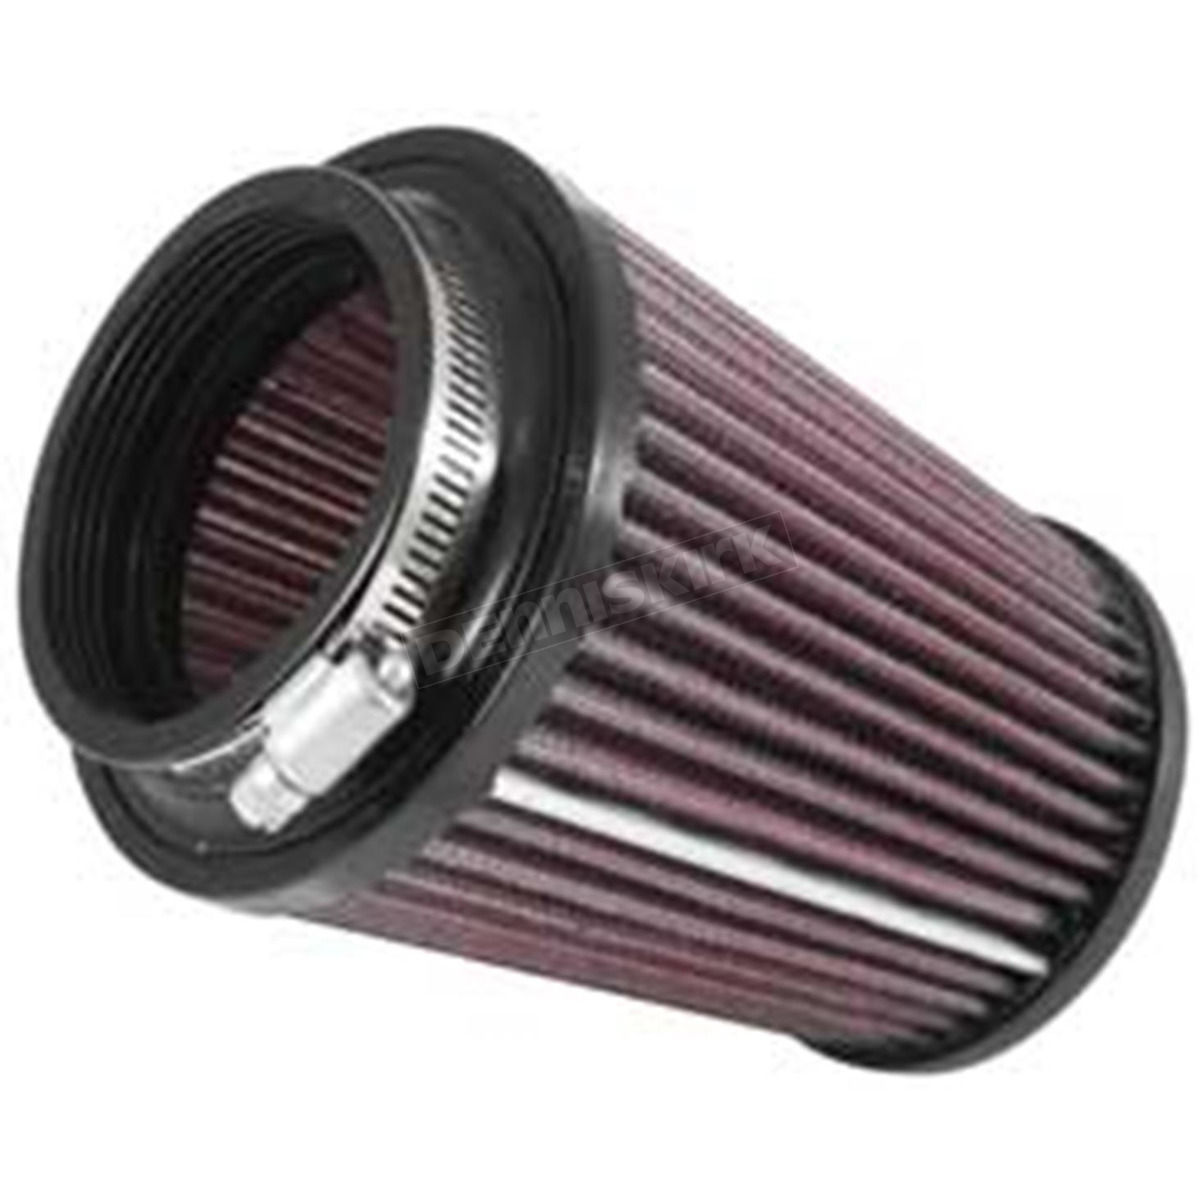 K N Re 0930 Universal Clamp On Air Filter Universal Air: K & N Universal Clamp-On Air Filter W/3 In./76mm ID